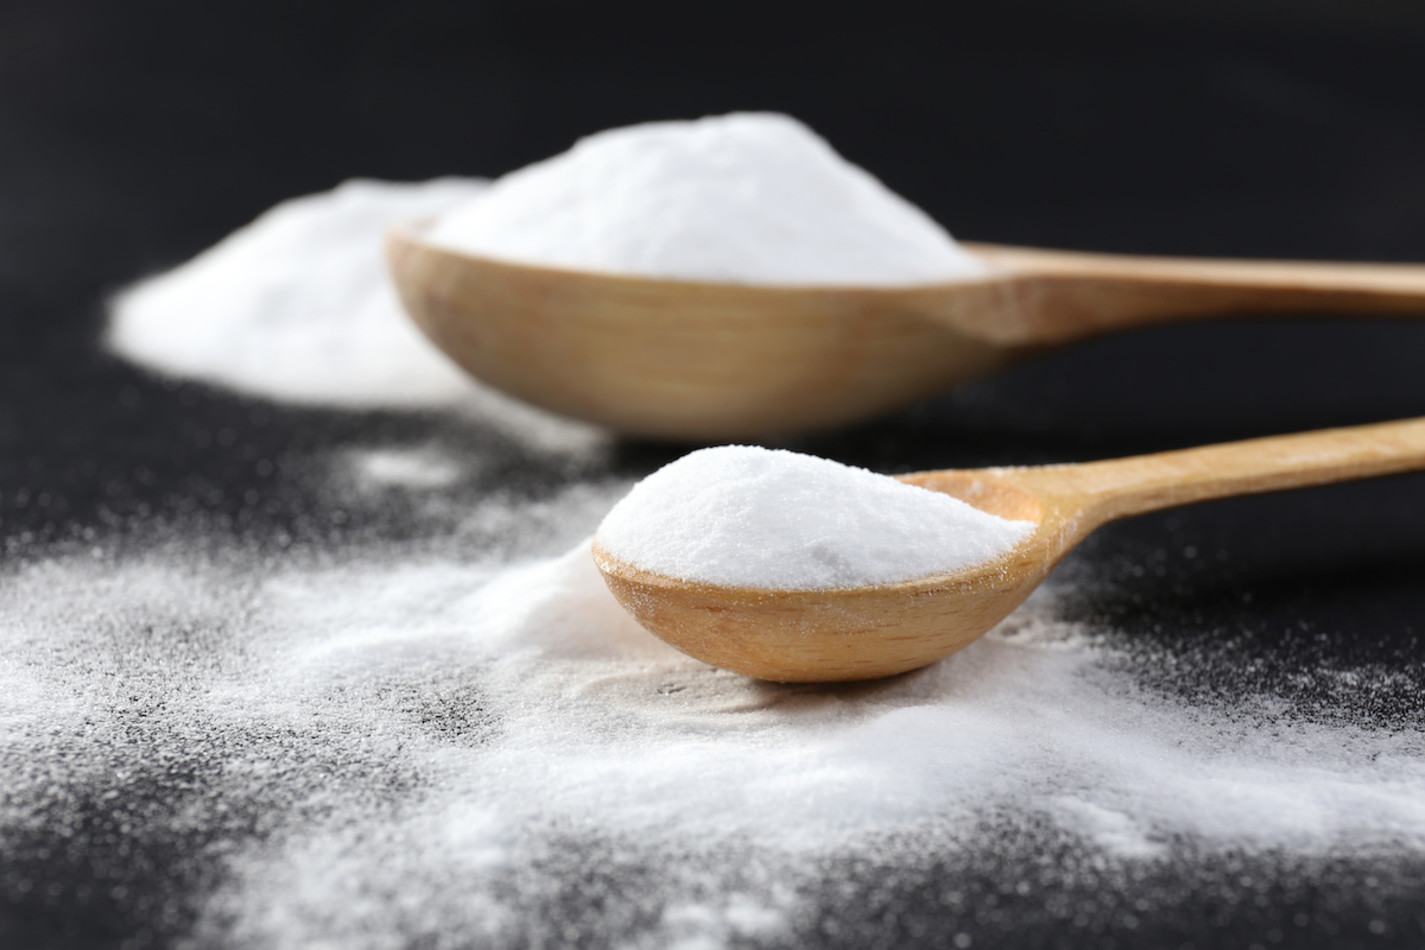 Baking Powder vs  Baking Soda: What's the Difference? - 2019